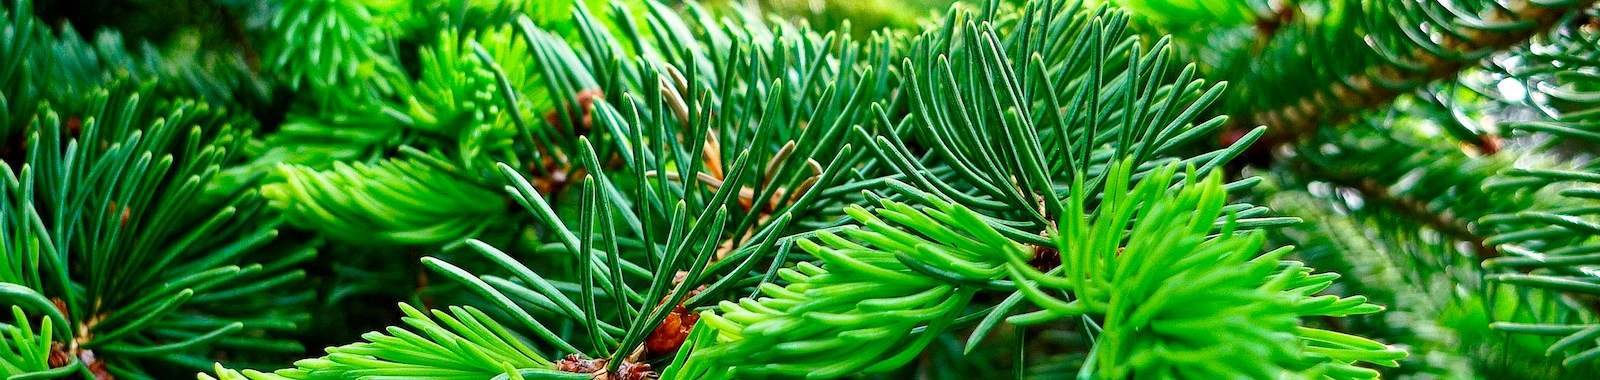 New growth of pine tree branches.